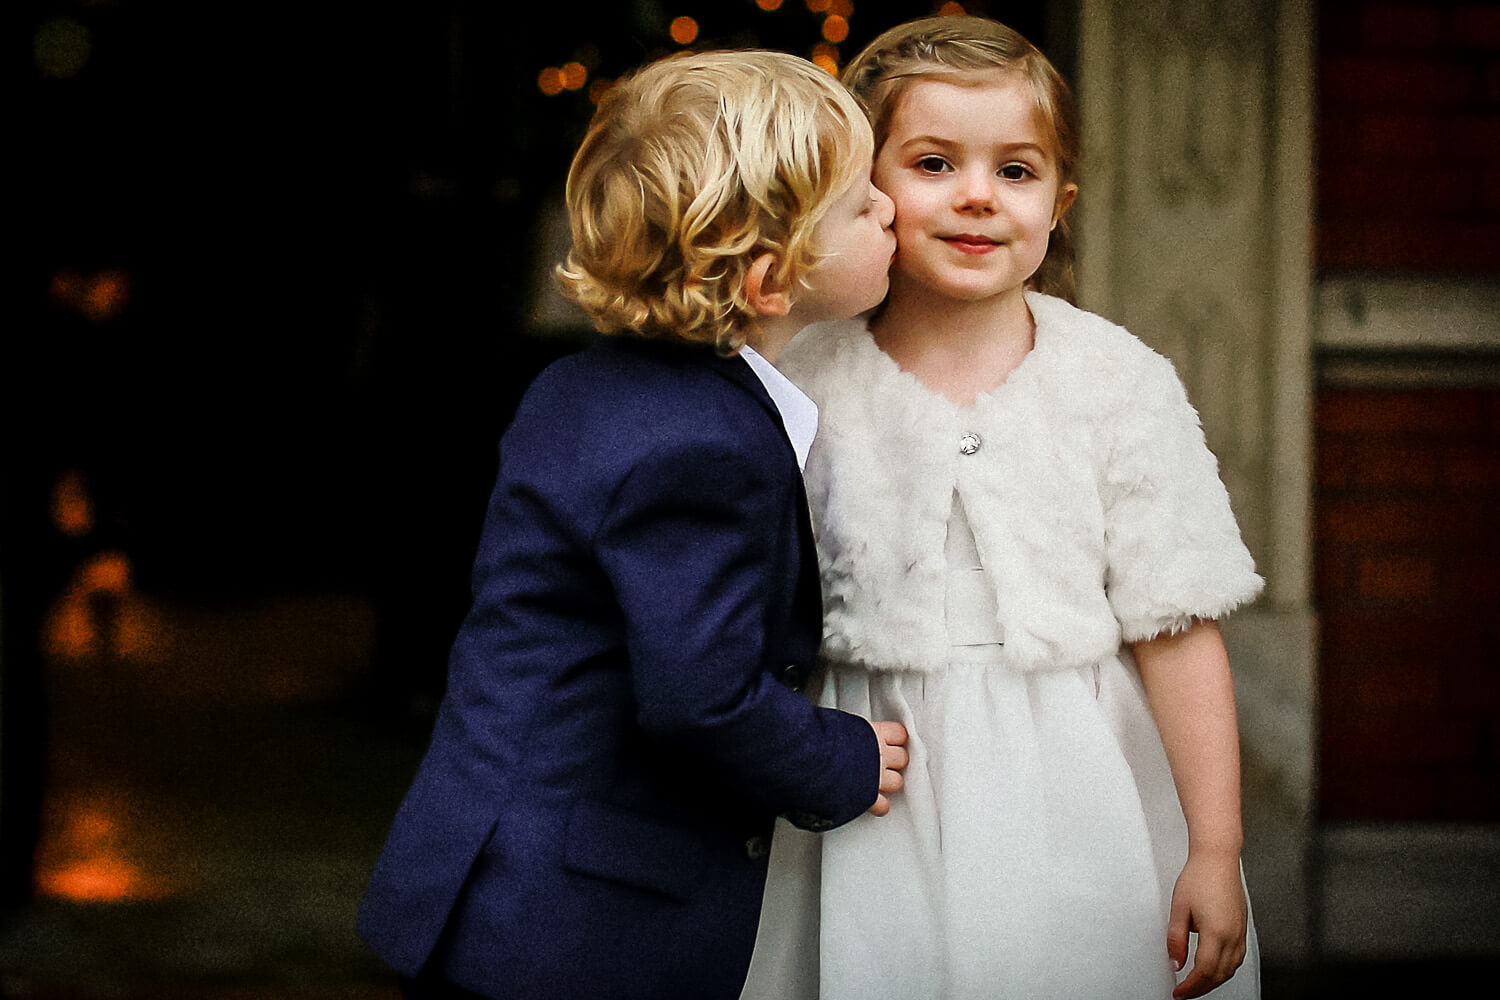 Little boy in blue suit kissing little girl at wedding Eaves Hall